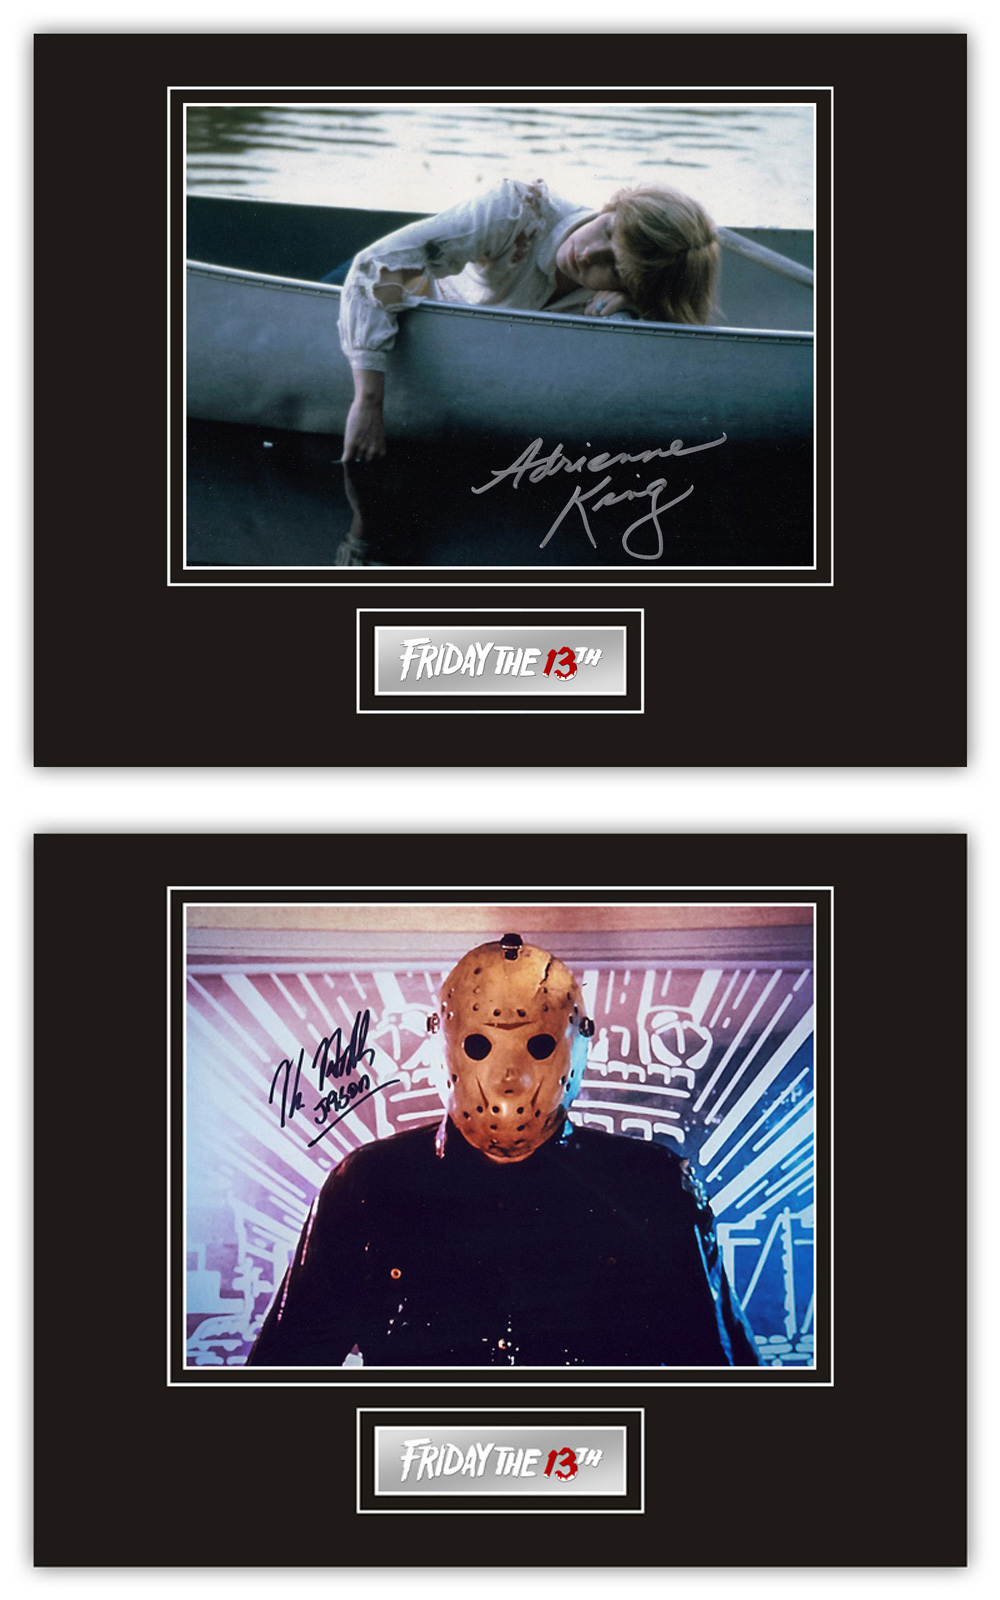 Set of 2 Stunning Displays! Friday 13th hand signed professionally mounted displays. This